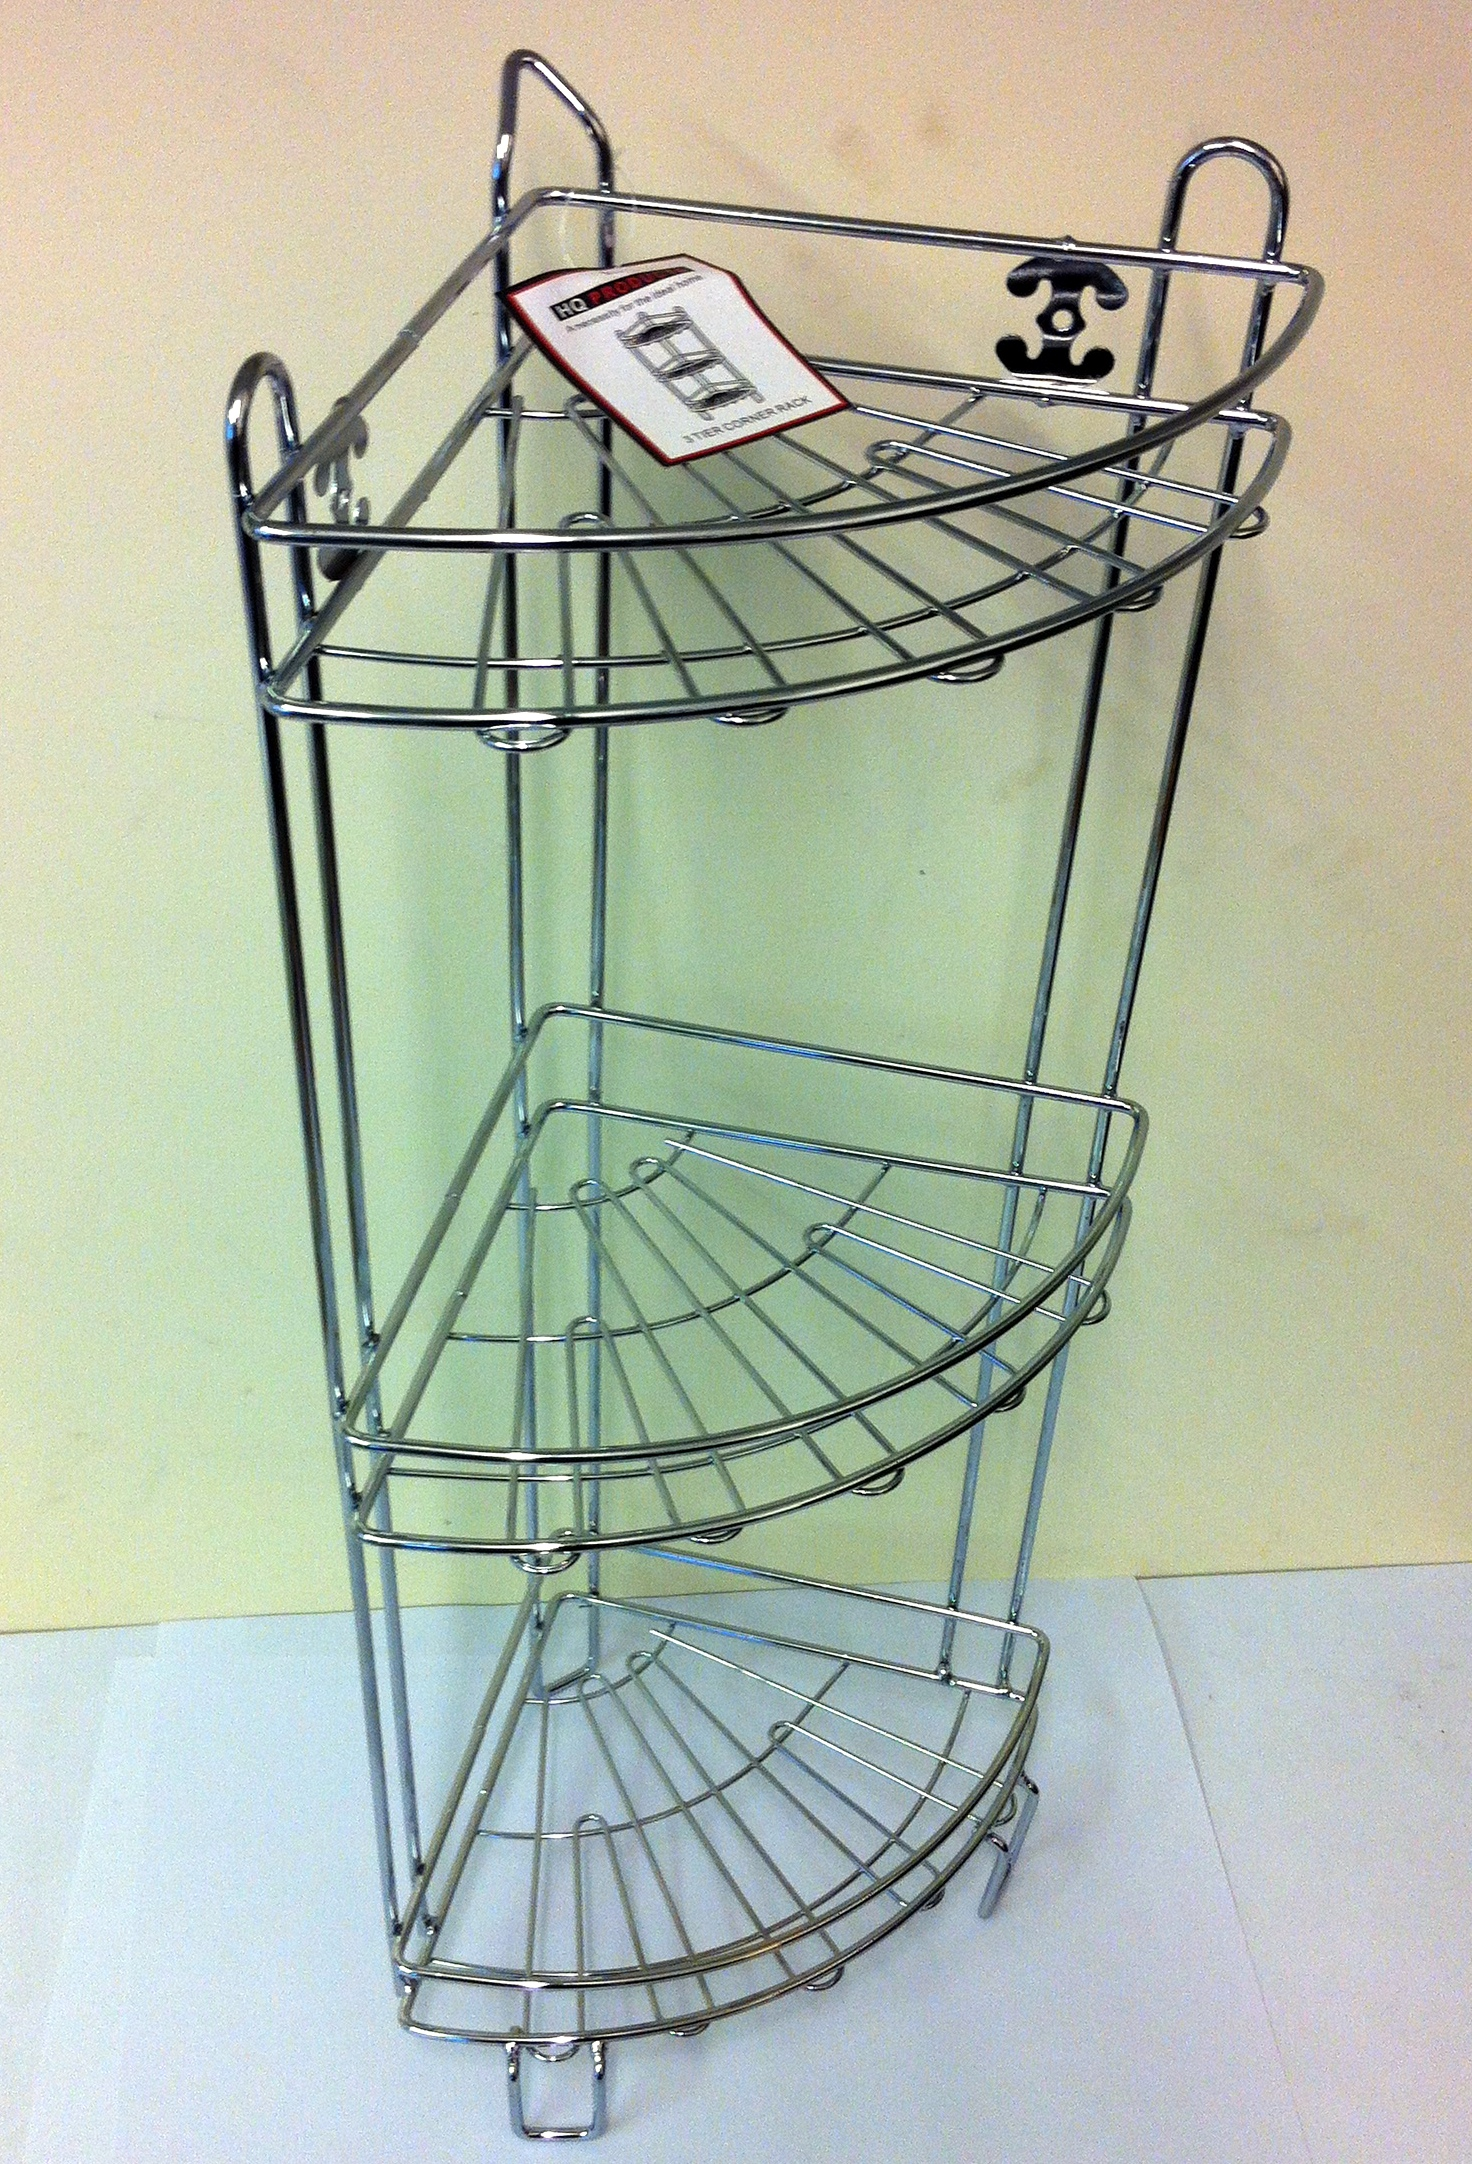 SHOWER CADDY 3 TIER CORNER RACK FREE STANDING CHROME